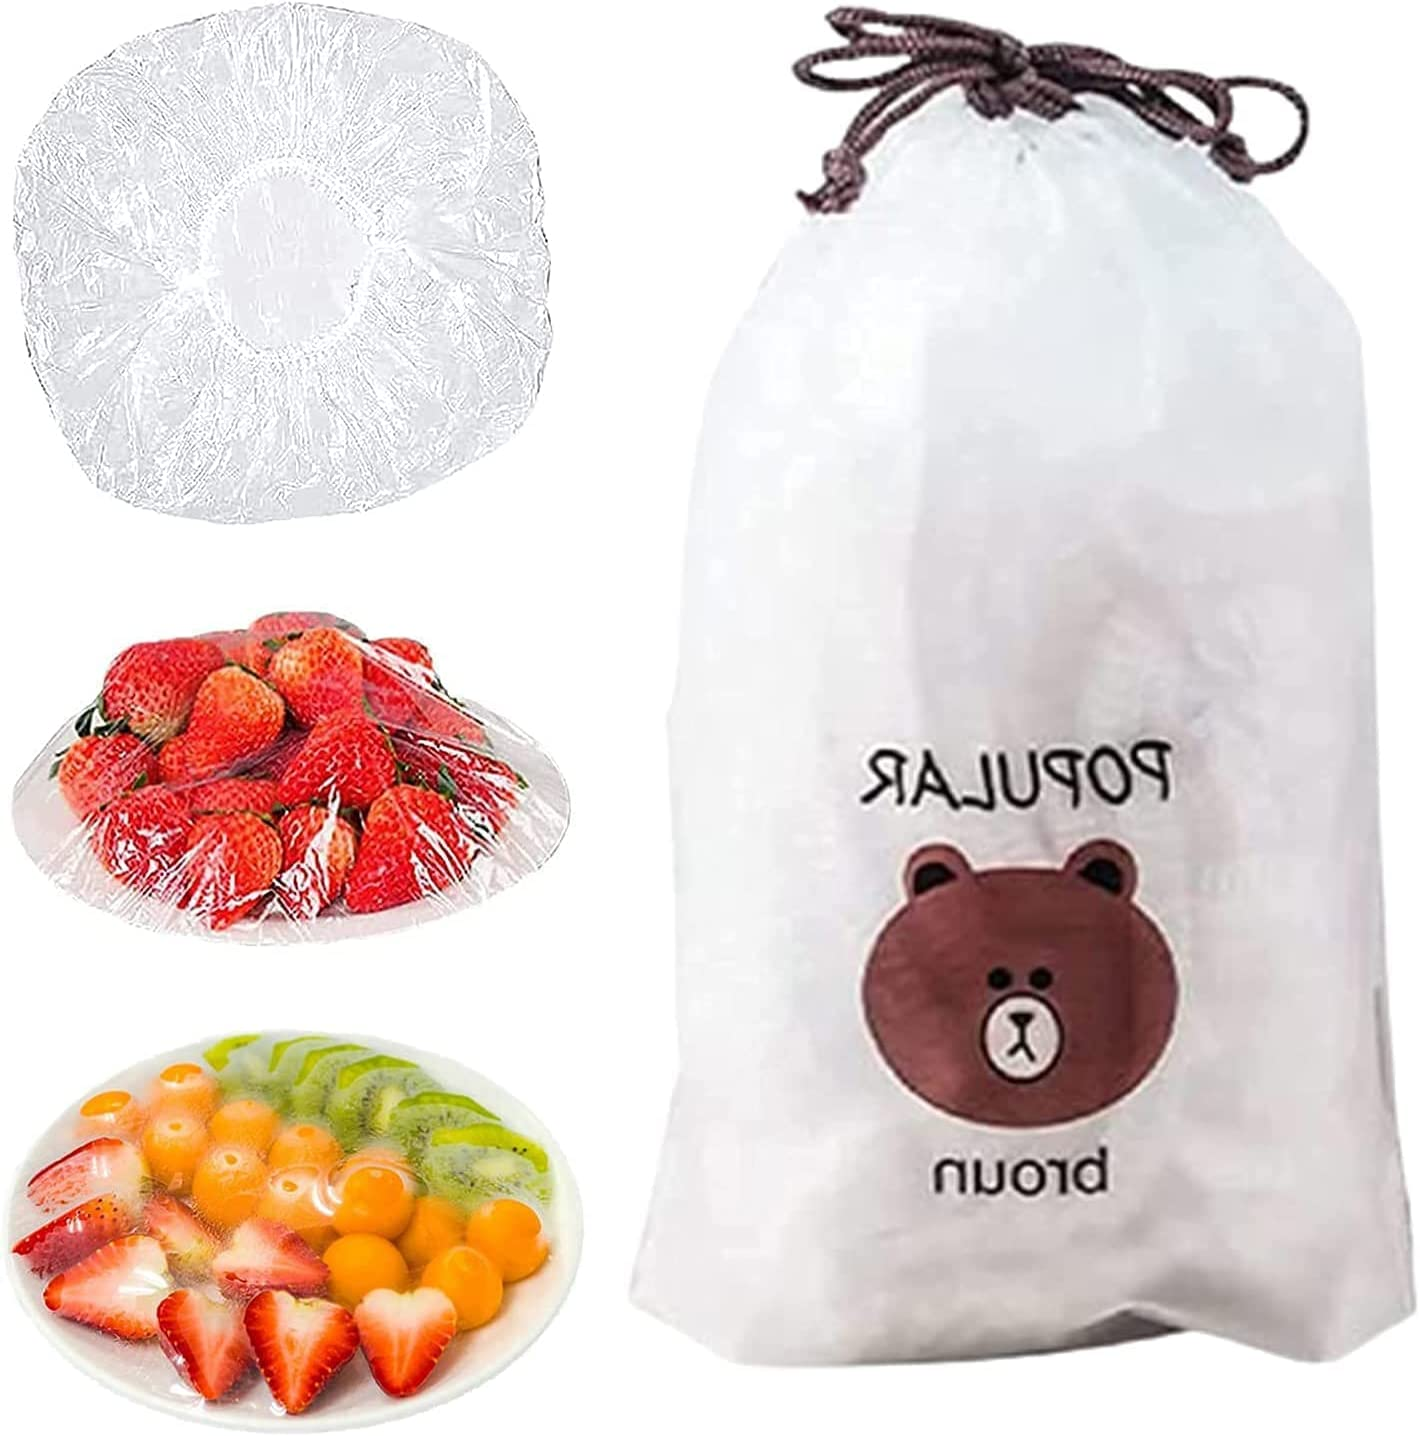 100PCS Fresh Keeping Bags,Reusable Elastic Food Storage Covers, Plastic Bowl Covers with Elastic Edging Stretch Plastic Wrap Bowl Covers